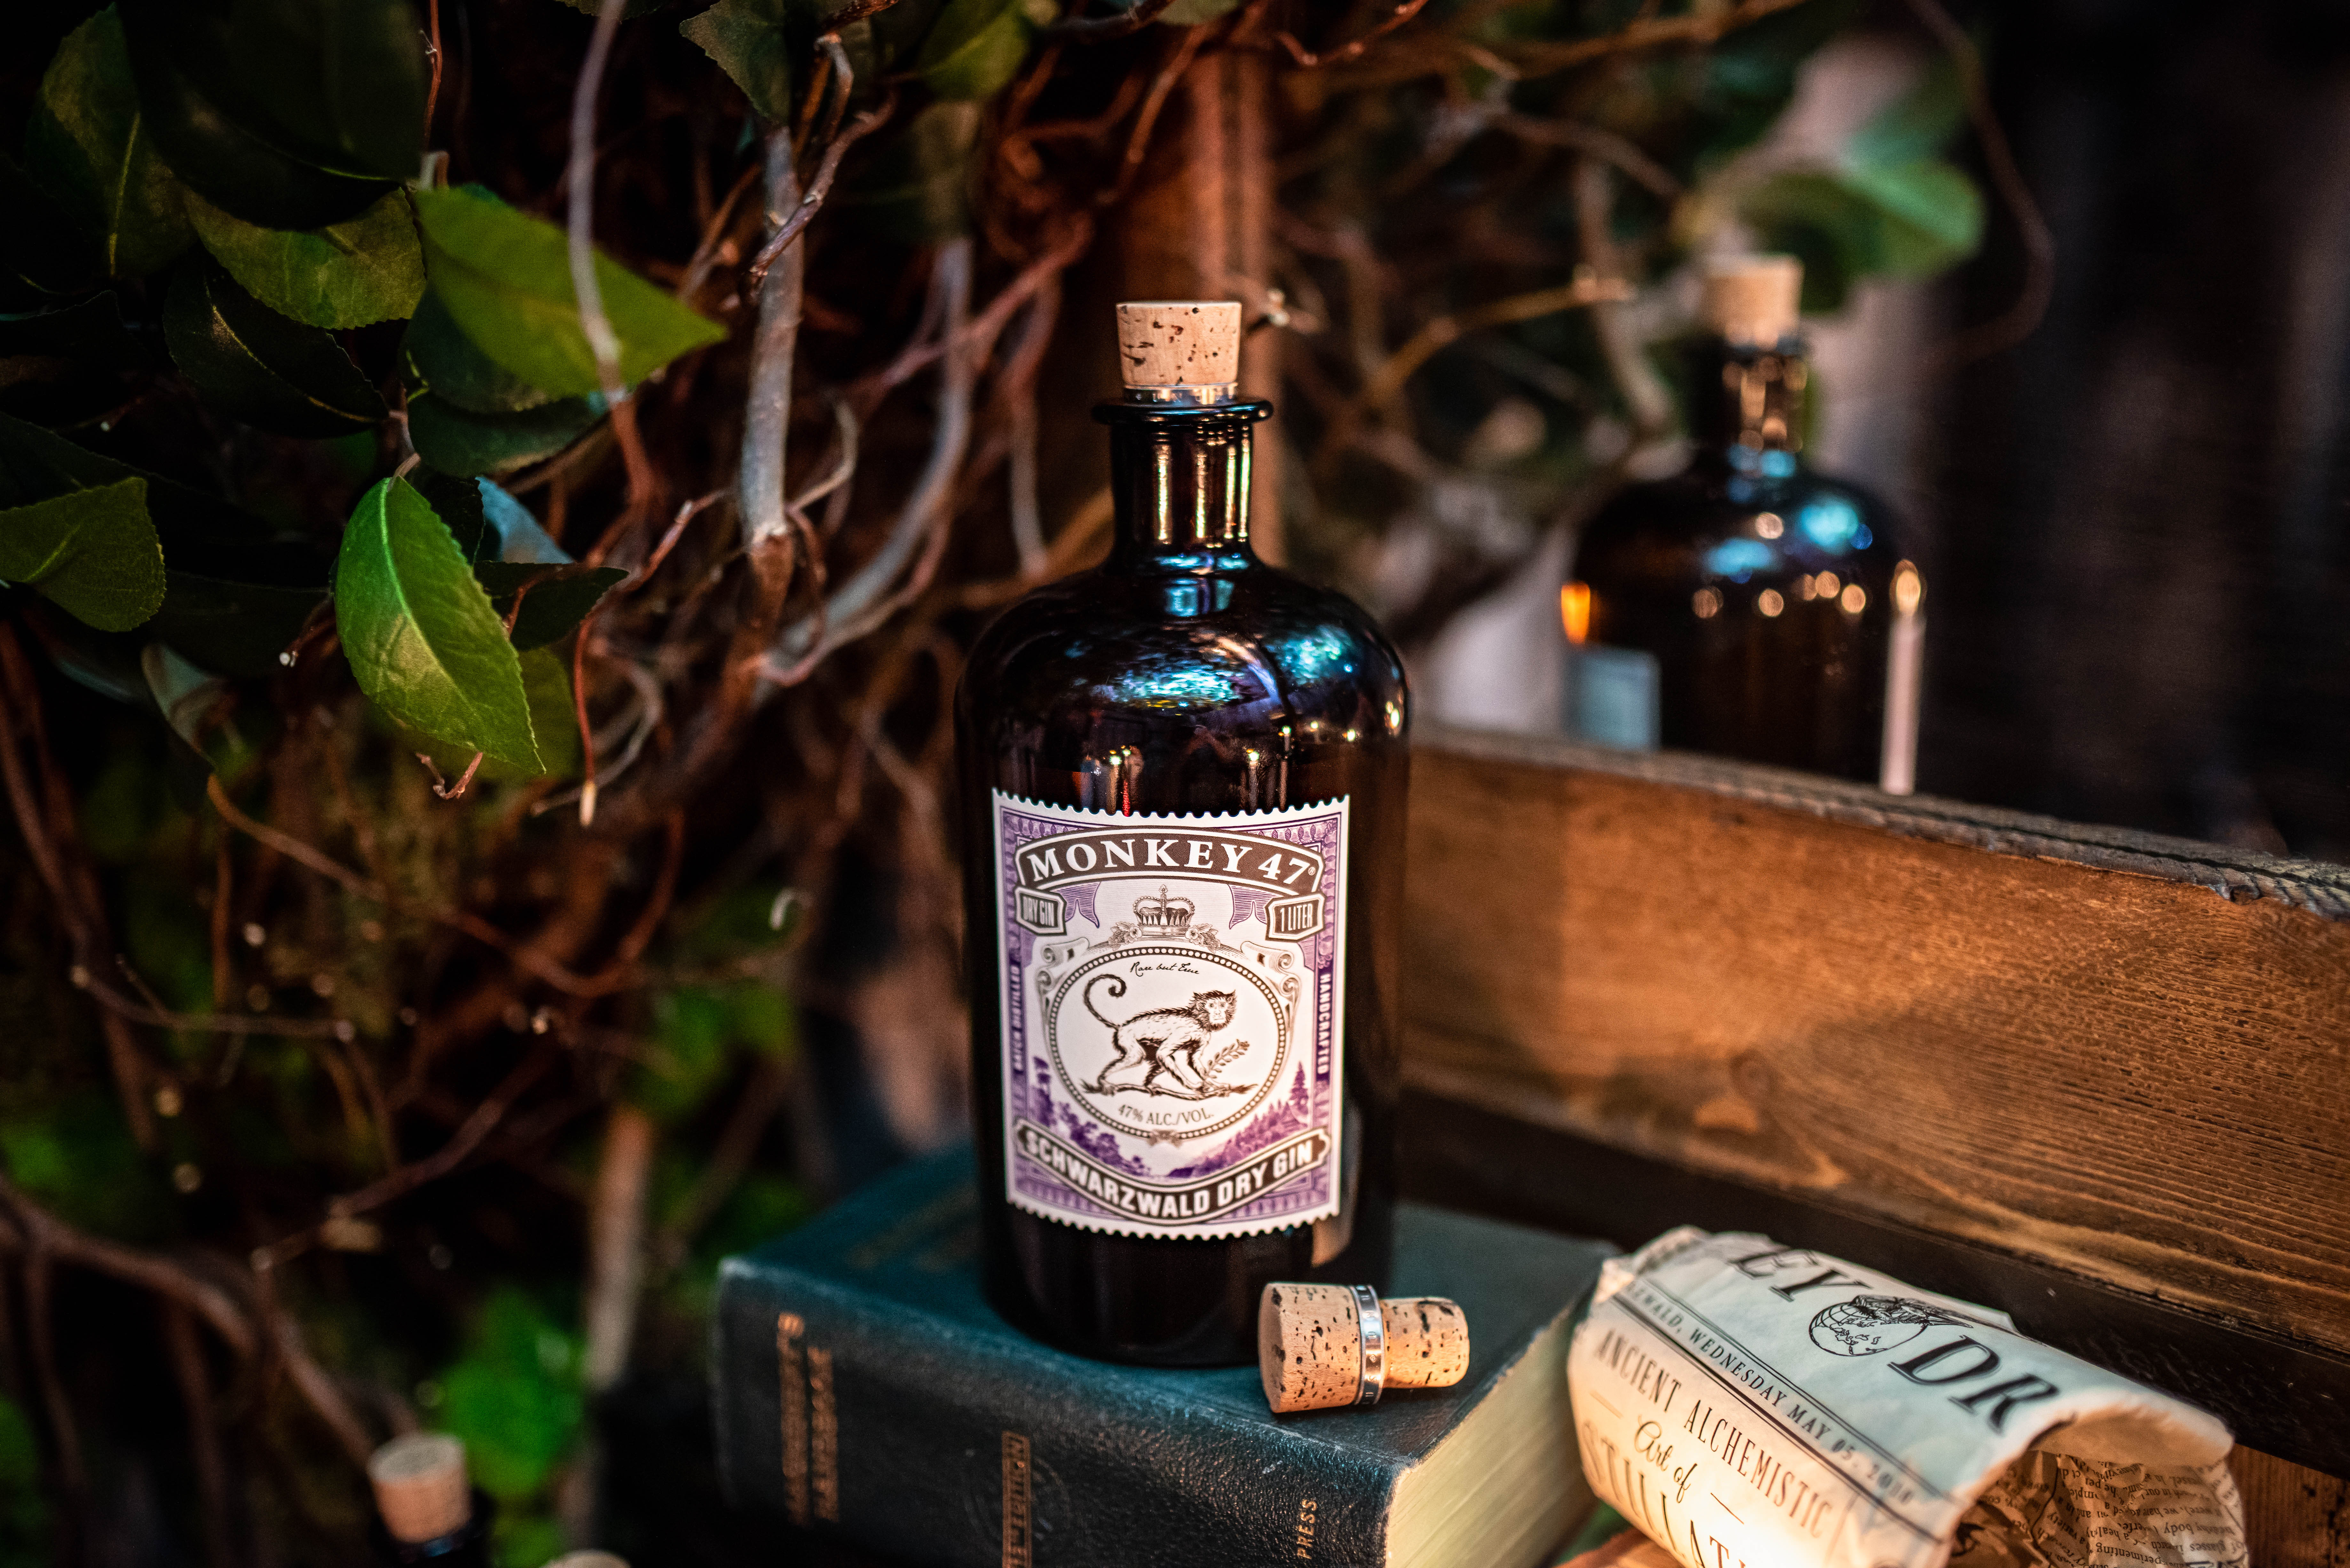 Monkey 47 Gin Announces A Not-to-be-missed Immersive Pop-up Experience photo